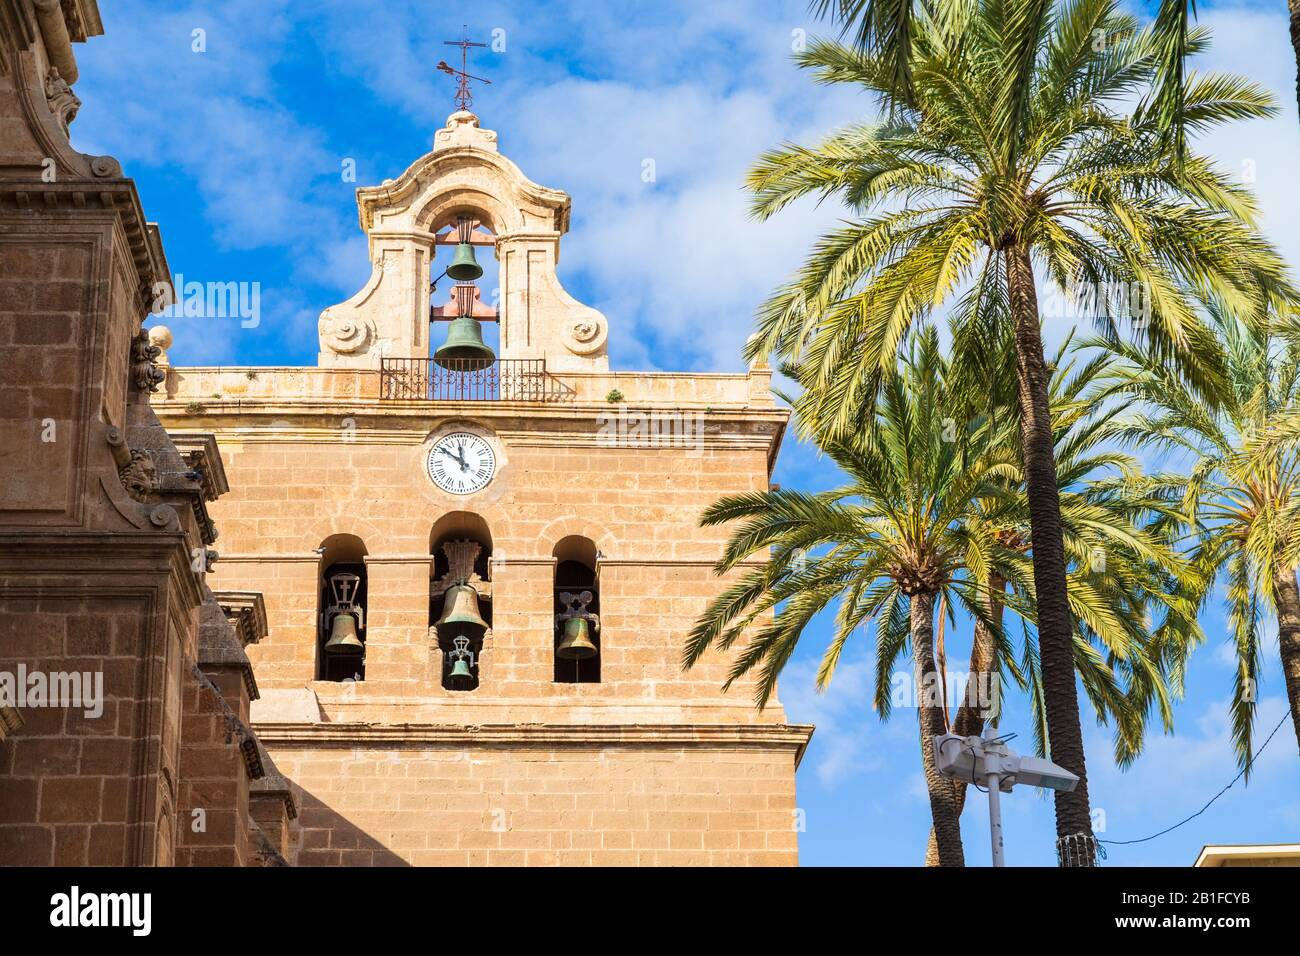 Cathedral of the Incarnation of Almeria, Roman Catholic cathedral in the city of Almeria, spain Stock Photo